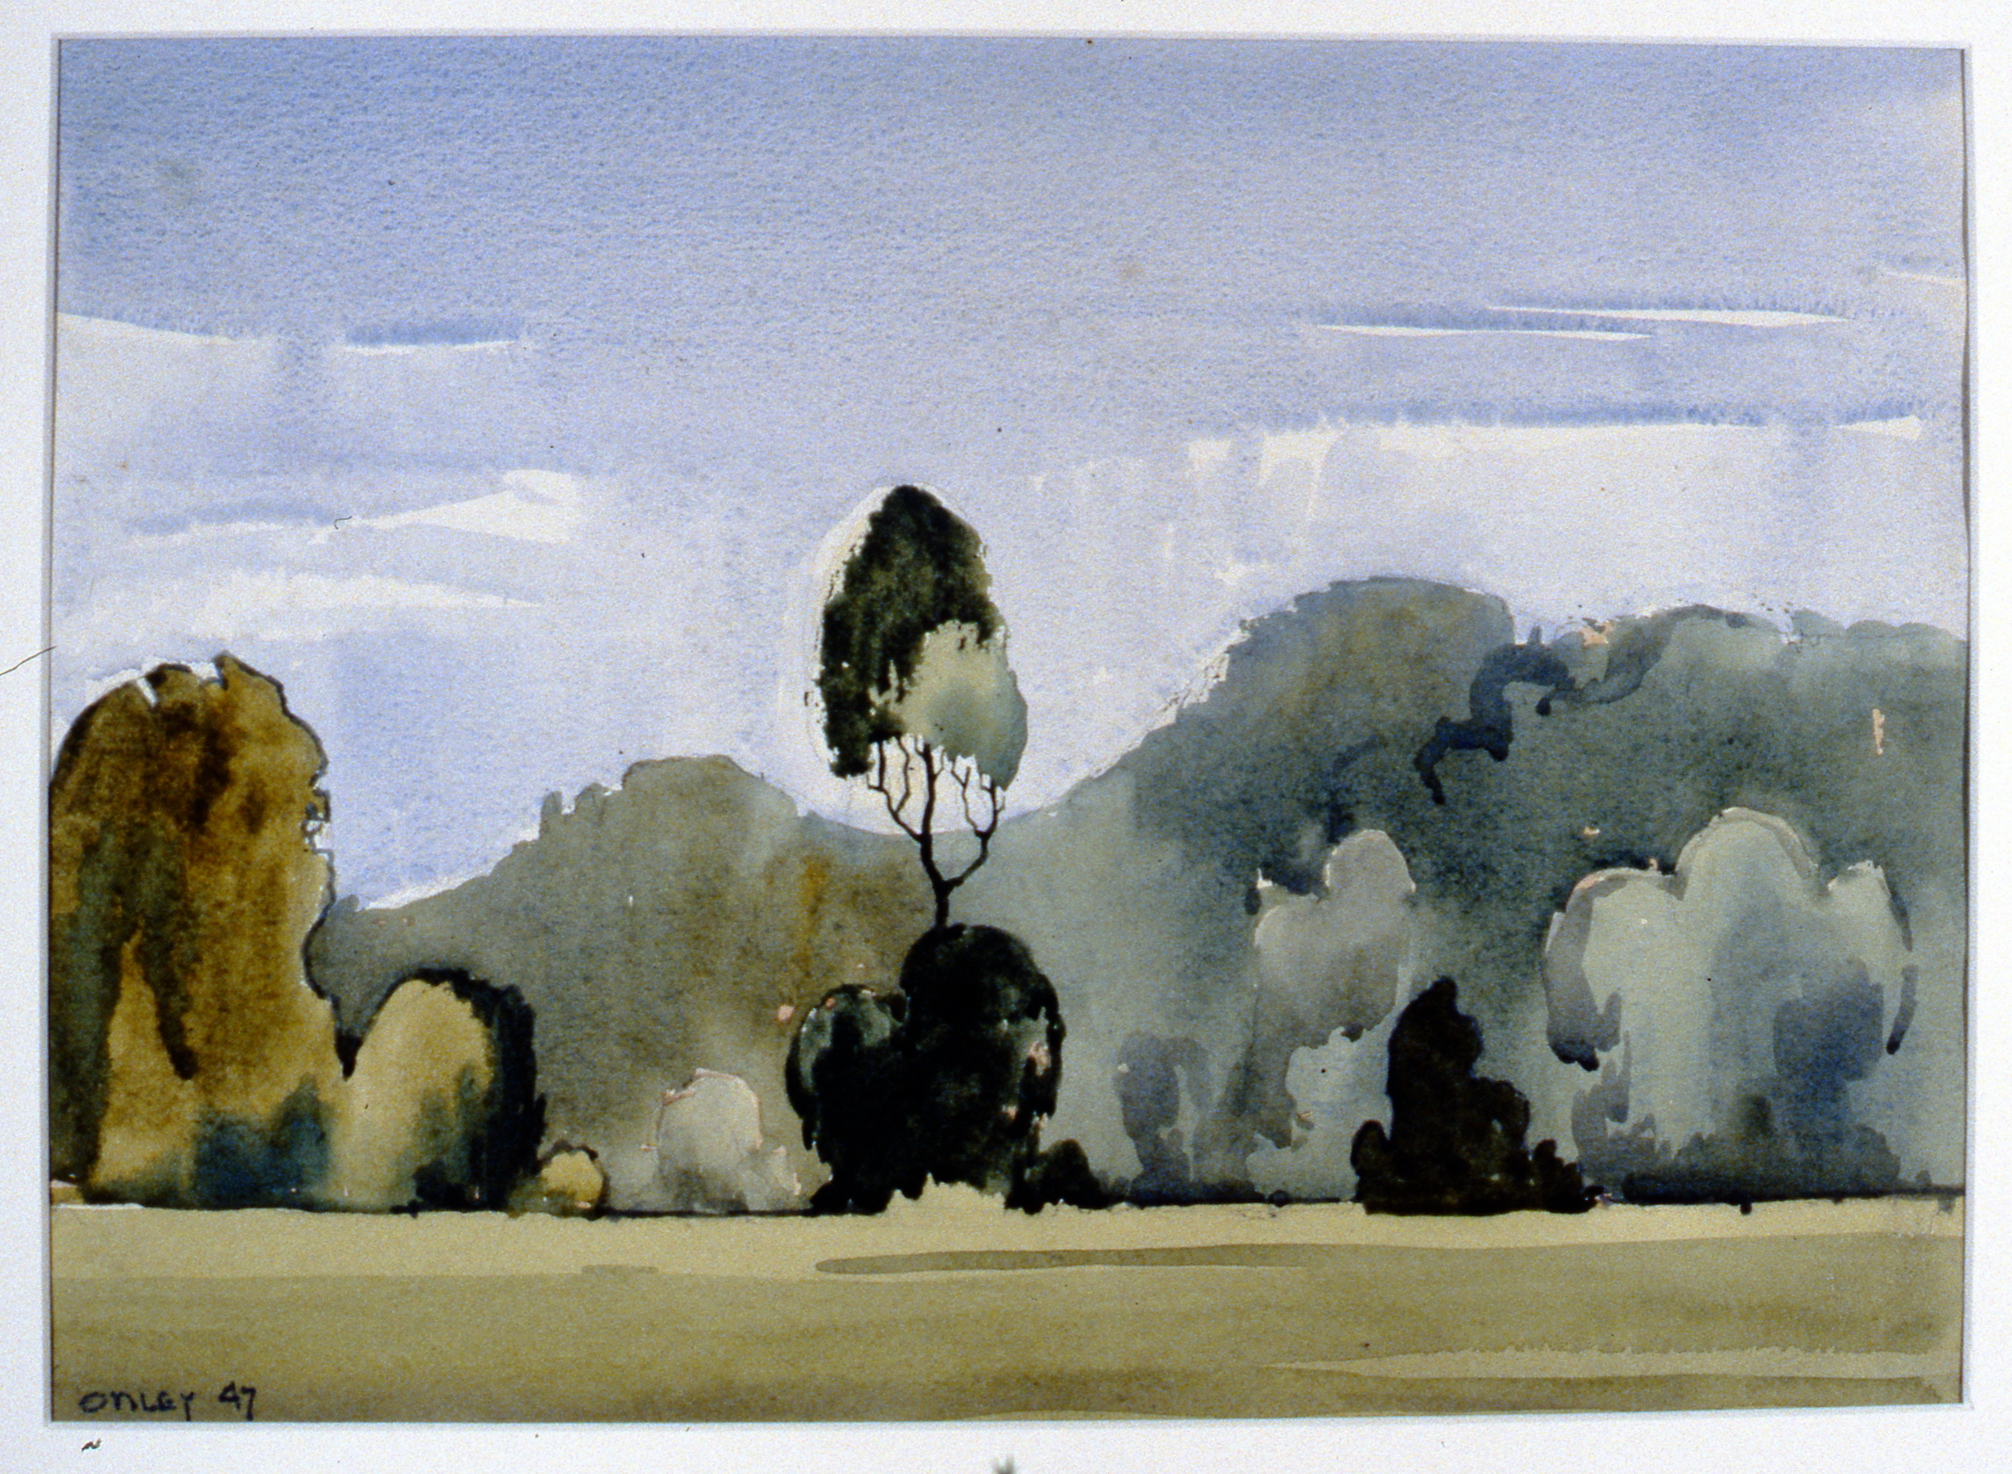 Landscape - Isle of Man (Baldwin Valley) , 1947, Toni Onley, watercolour, 27.4 cm x 38 cm, 2001.04.05. Gift of the Estate of Ethel & Maurice Joslin.